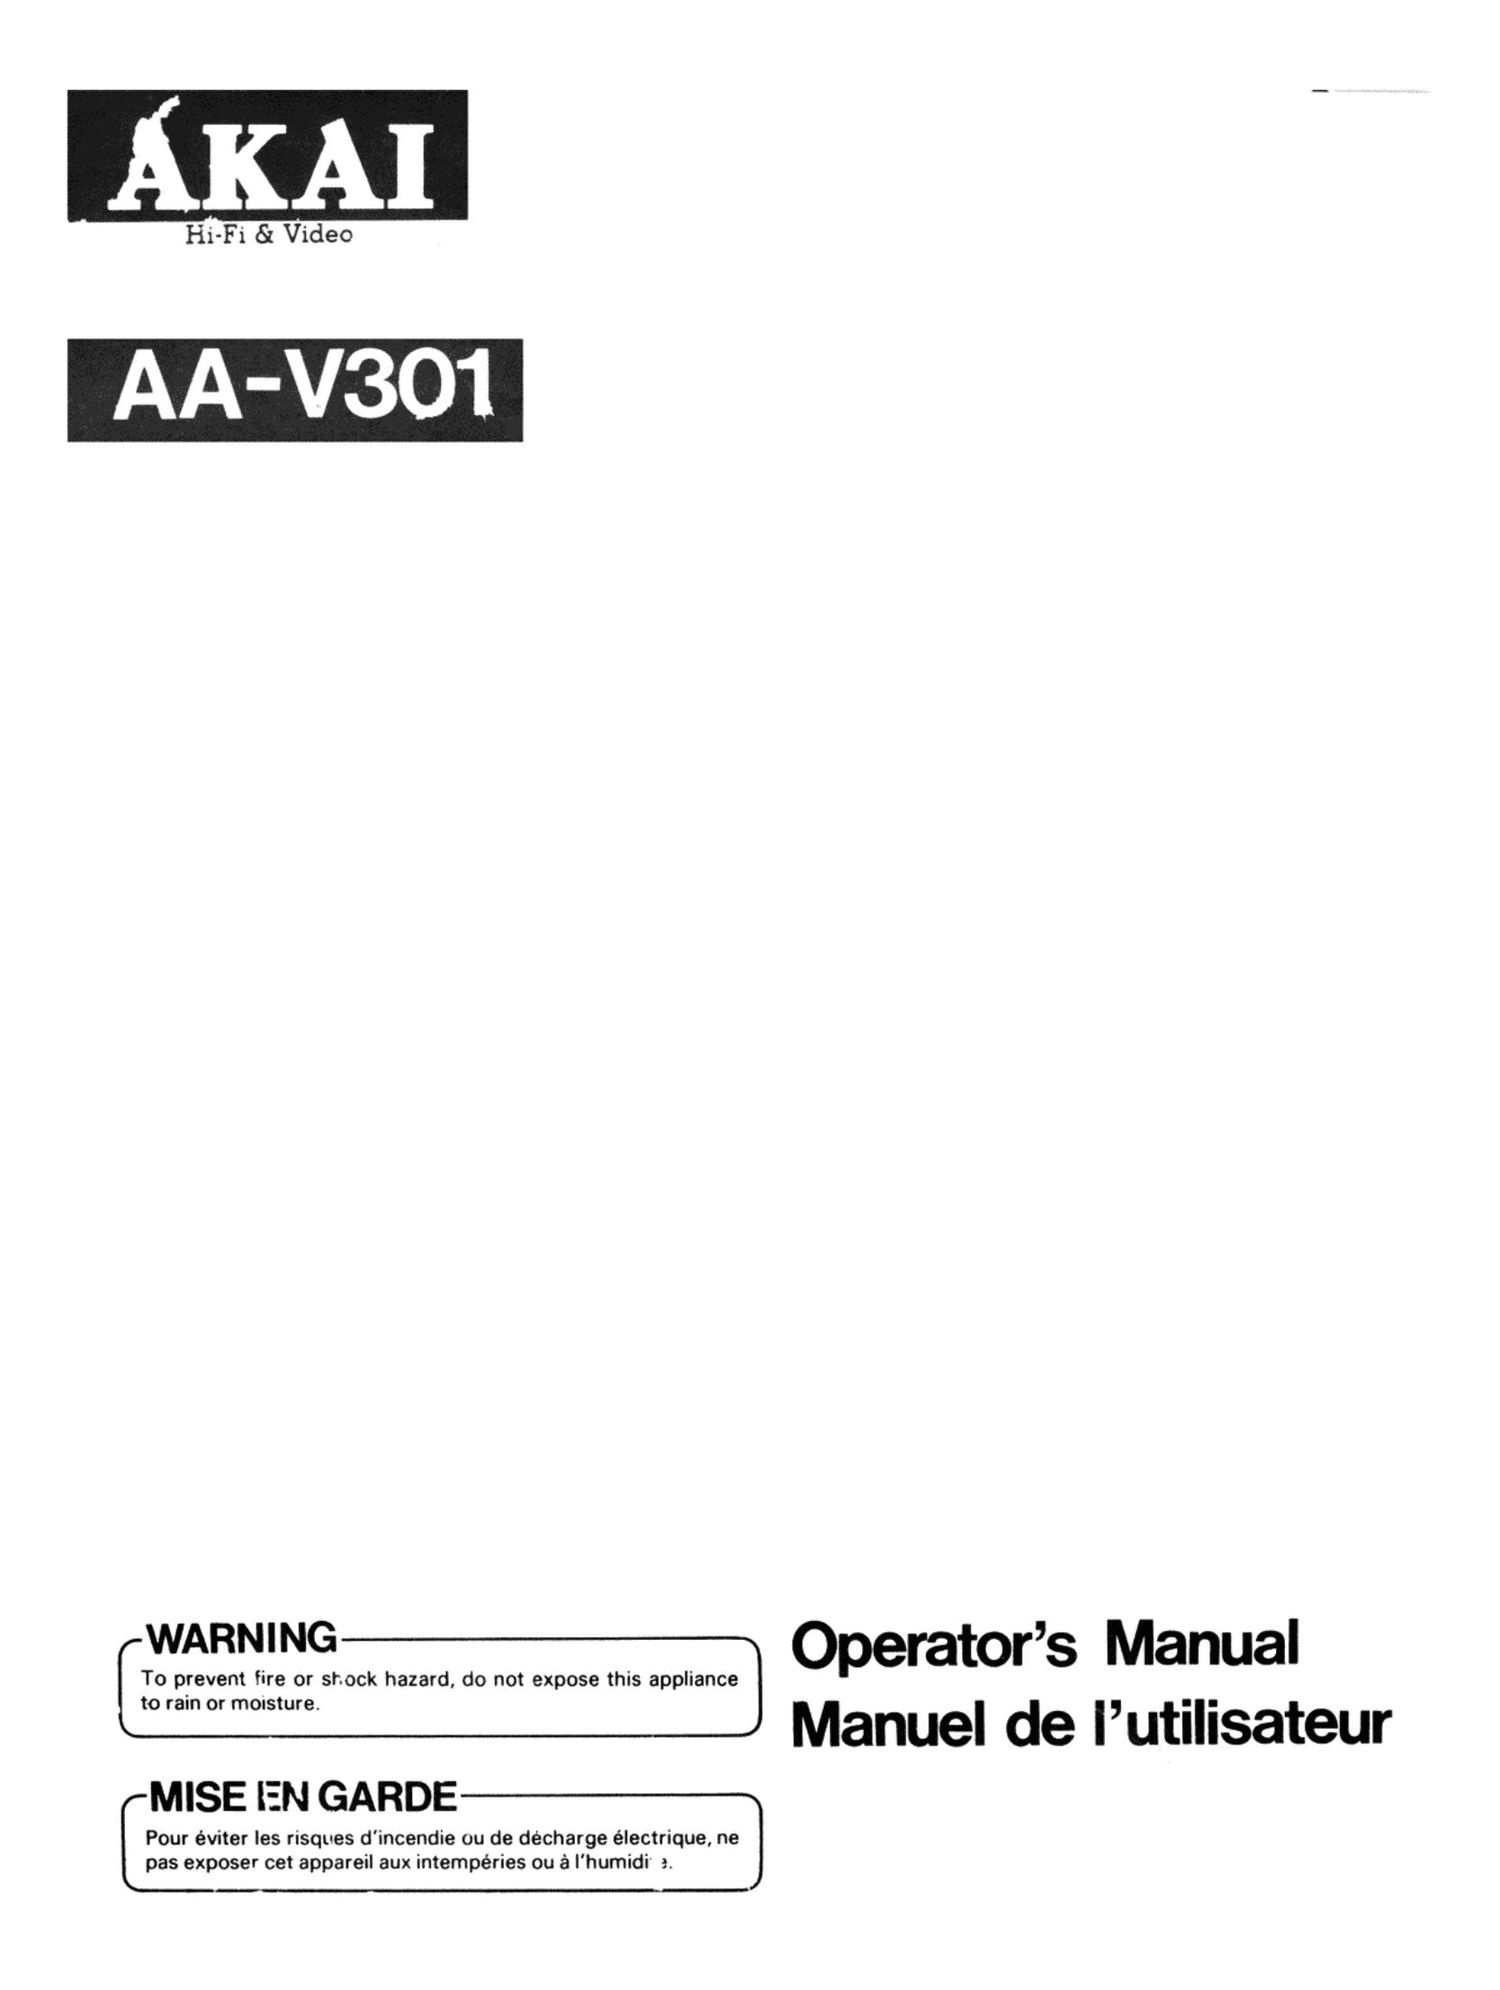 Akai AAV 301 Owners Manual